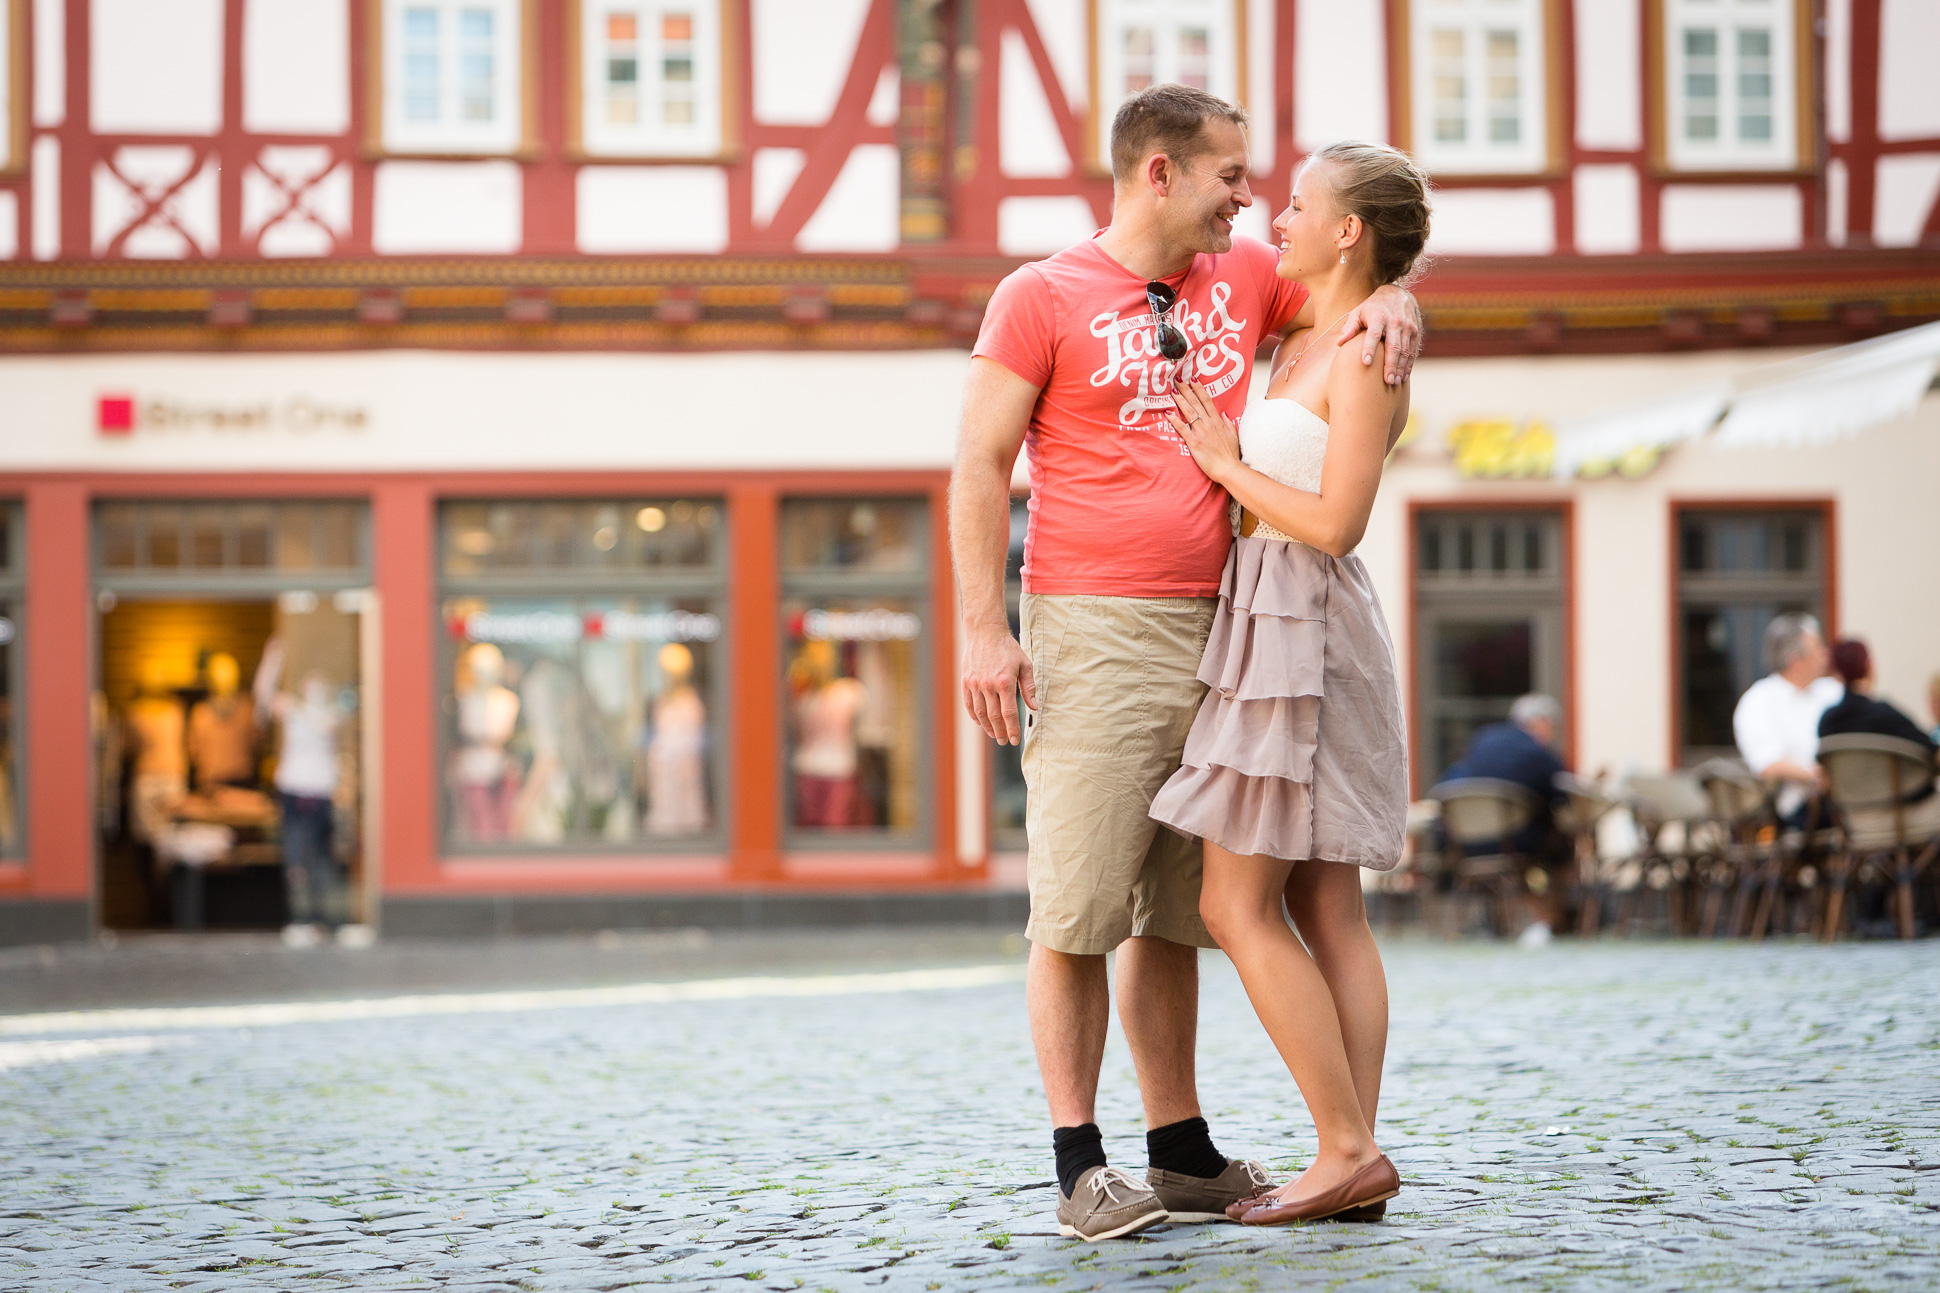 Paarshooting / Engagement Shooting | © Andreas Bender